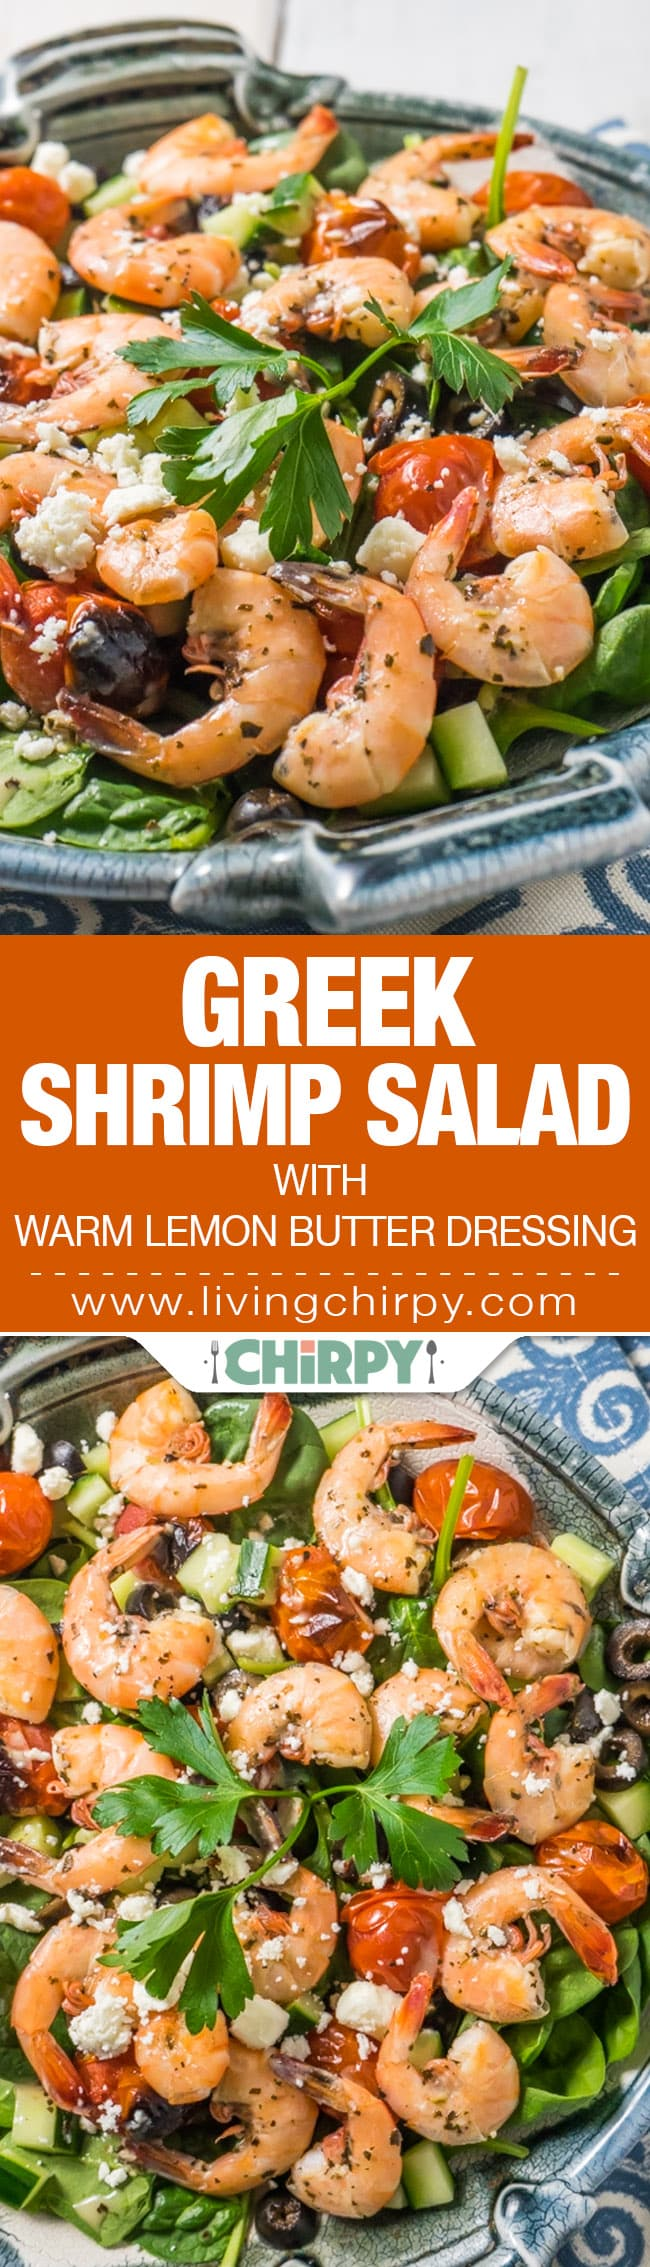 Greek Shrimp Salad with Warm Lemon Butter Dressing